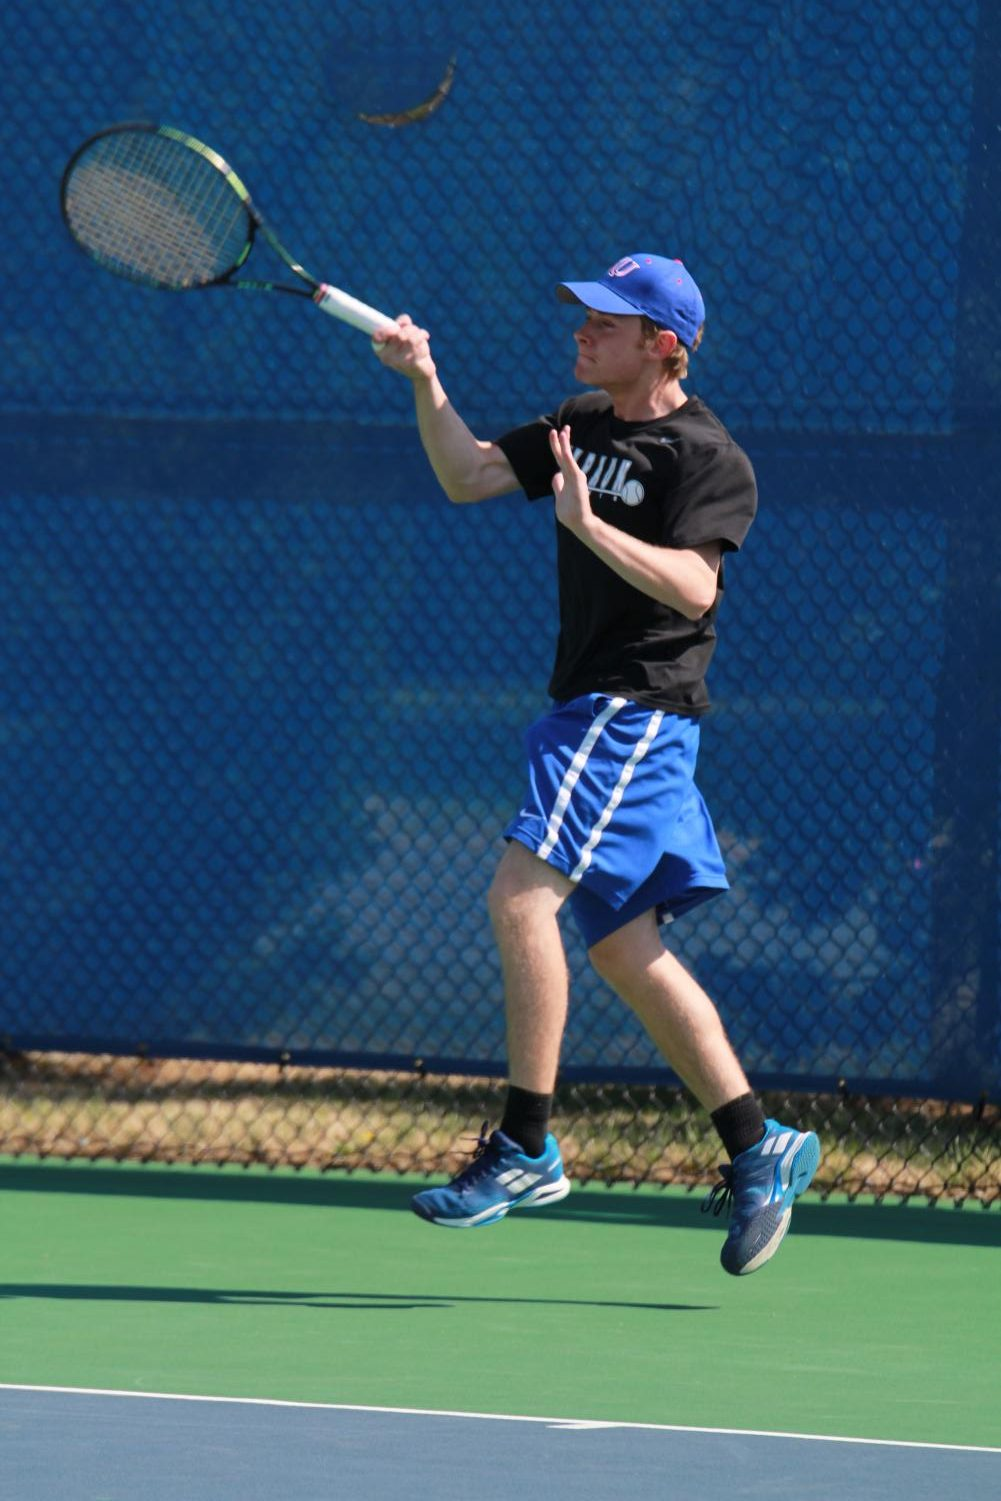 Senior Andrew Klimiuk returns his opponents serve at the Collegiate Invitational March 28 in #1 singles. Klimiuk advanced to the championship match, but lost 8-4. photo by John Biehler